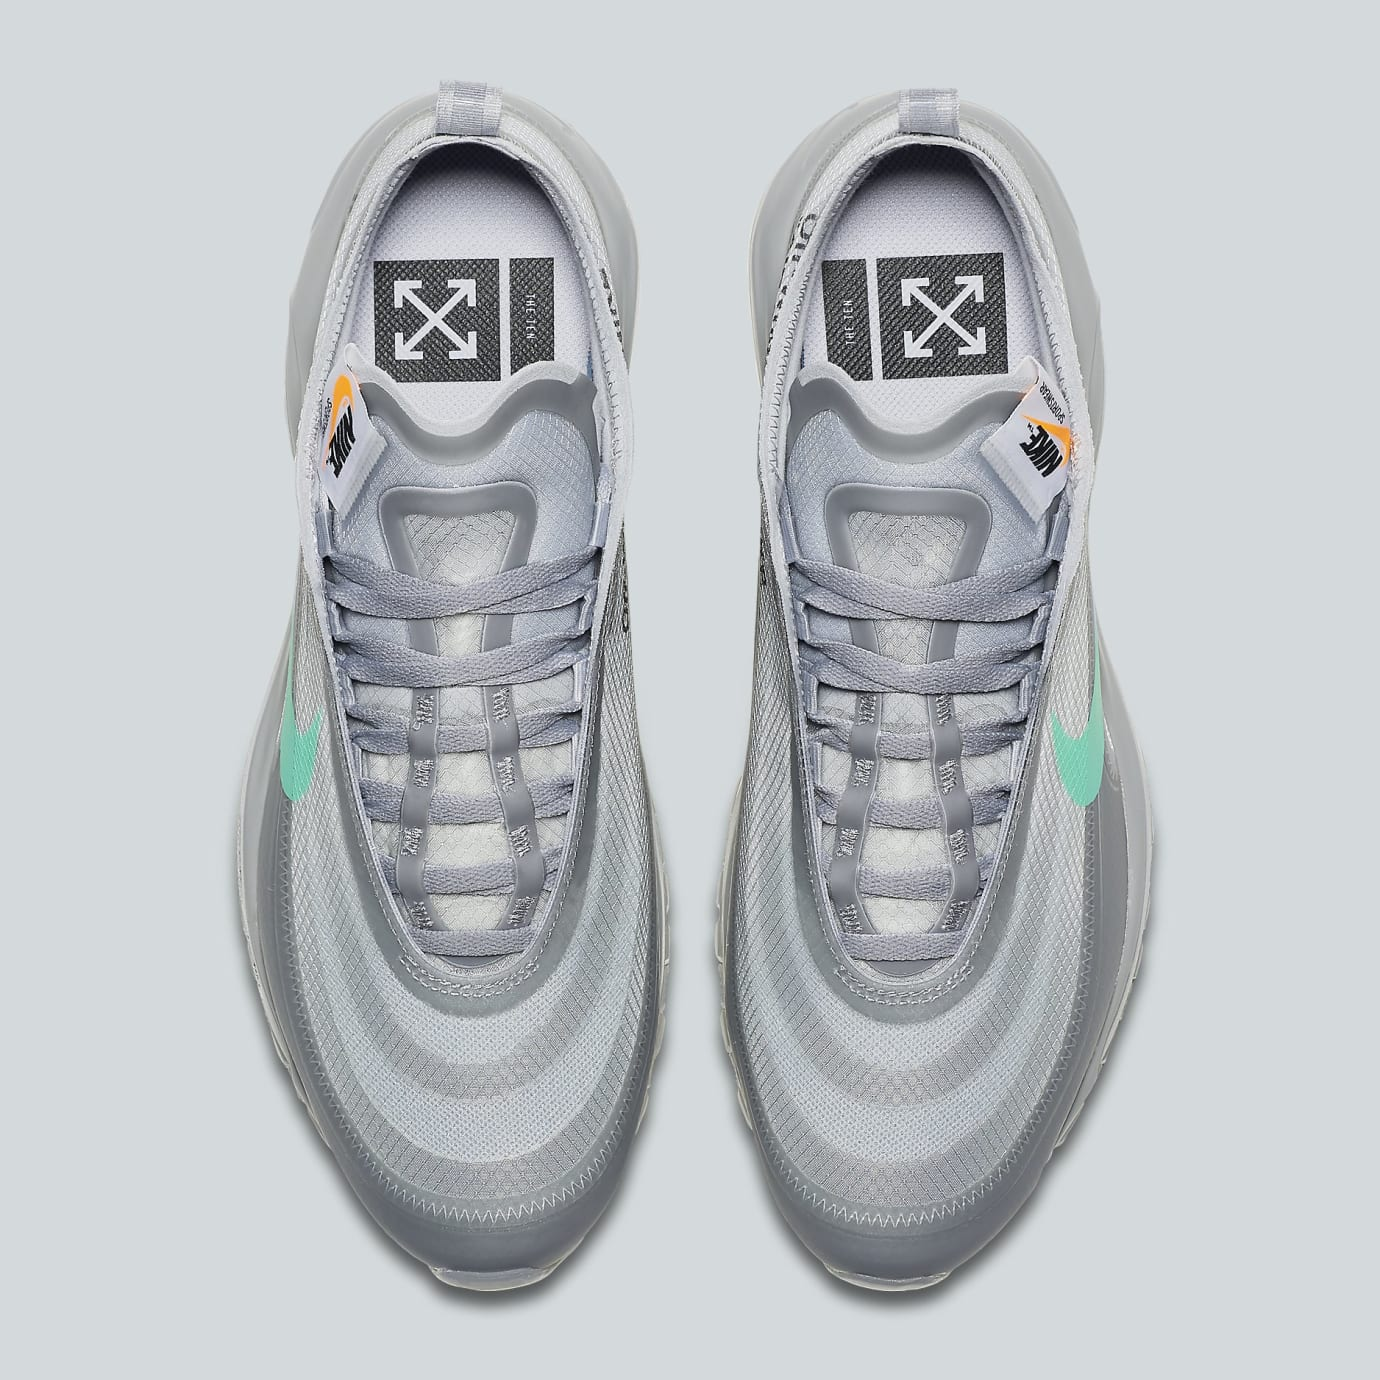 newest collection 54e36 8ce00 Image via Nike Off-White x Nike Air Max 97 Off-White Wolf Grey White Menta  Release